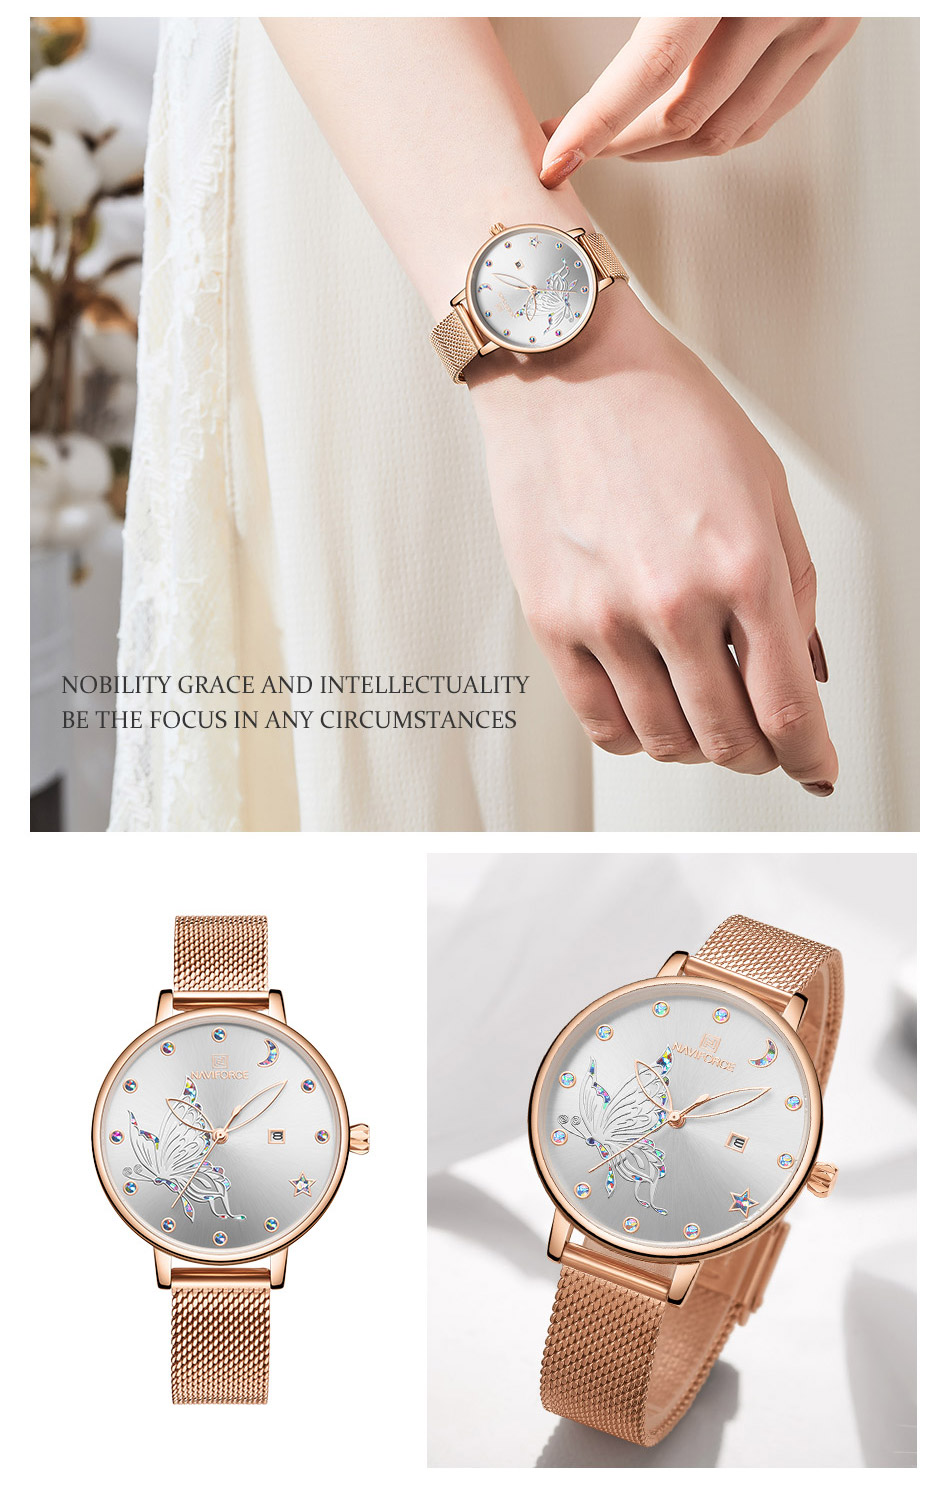 H966a18aeab69458d979fccfccfaf4b01X - NAVIFORCE Luxury Brand Watch Women Fashion Dress Quartz Ladies Mesh Stainless Steel 3ATM Waterproof Casual Watches for Girl